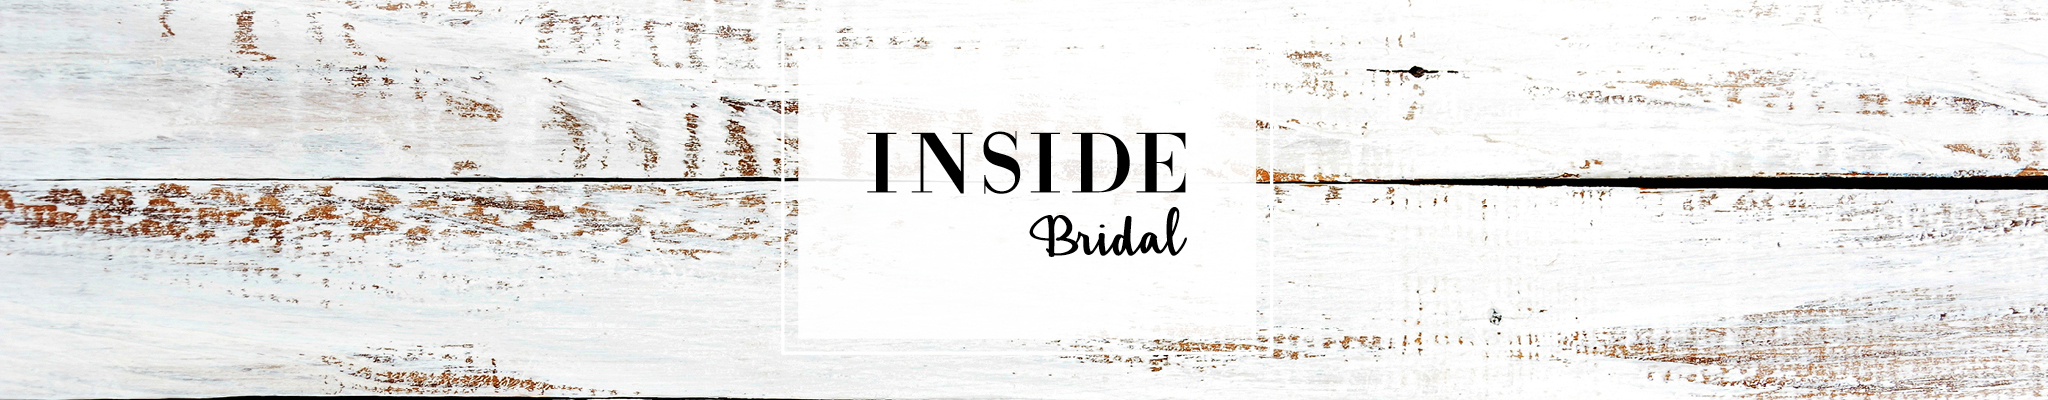 //insidebridal.co.uk/wp-content/uploads/2017/01/Home_Logo_2.jpg